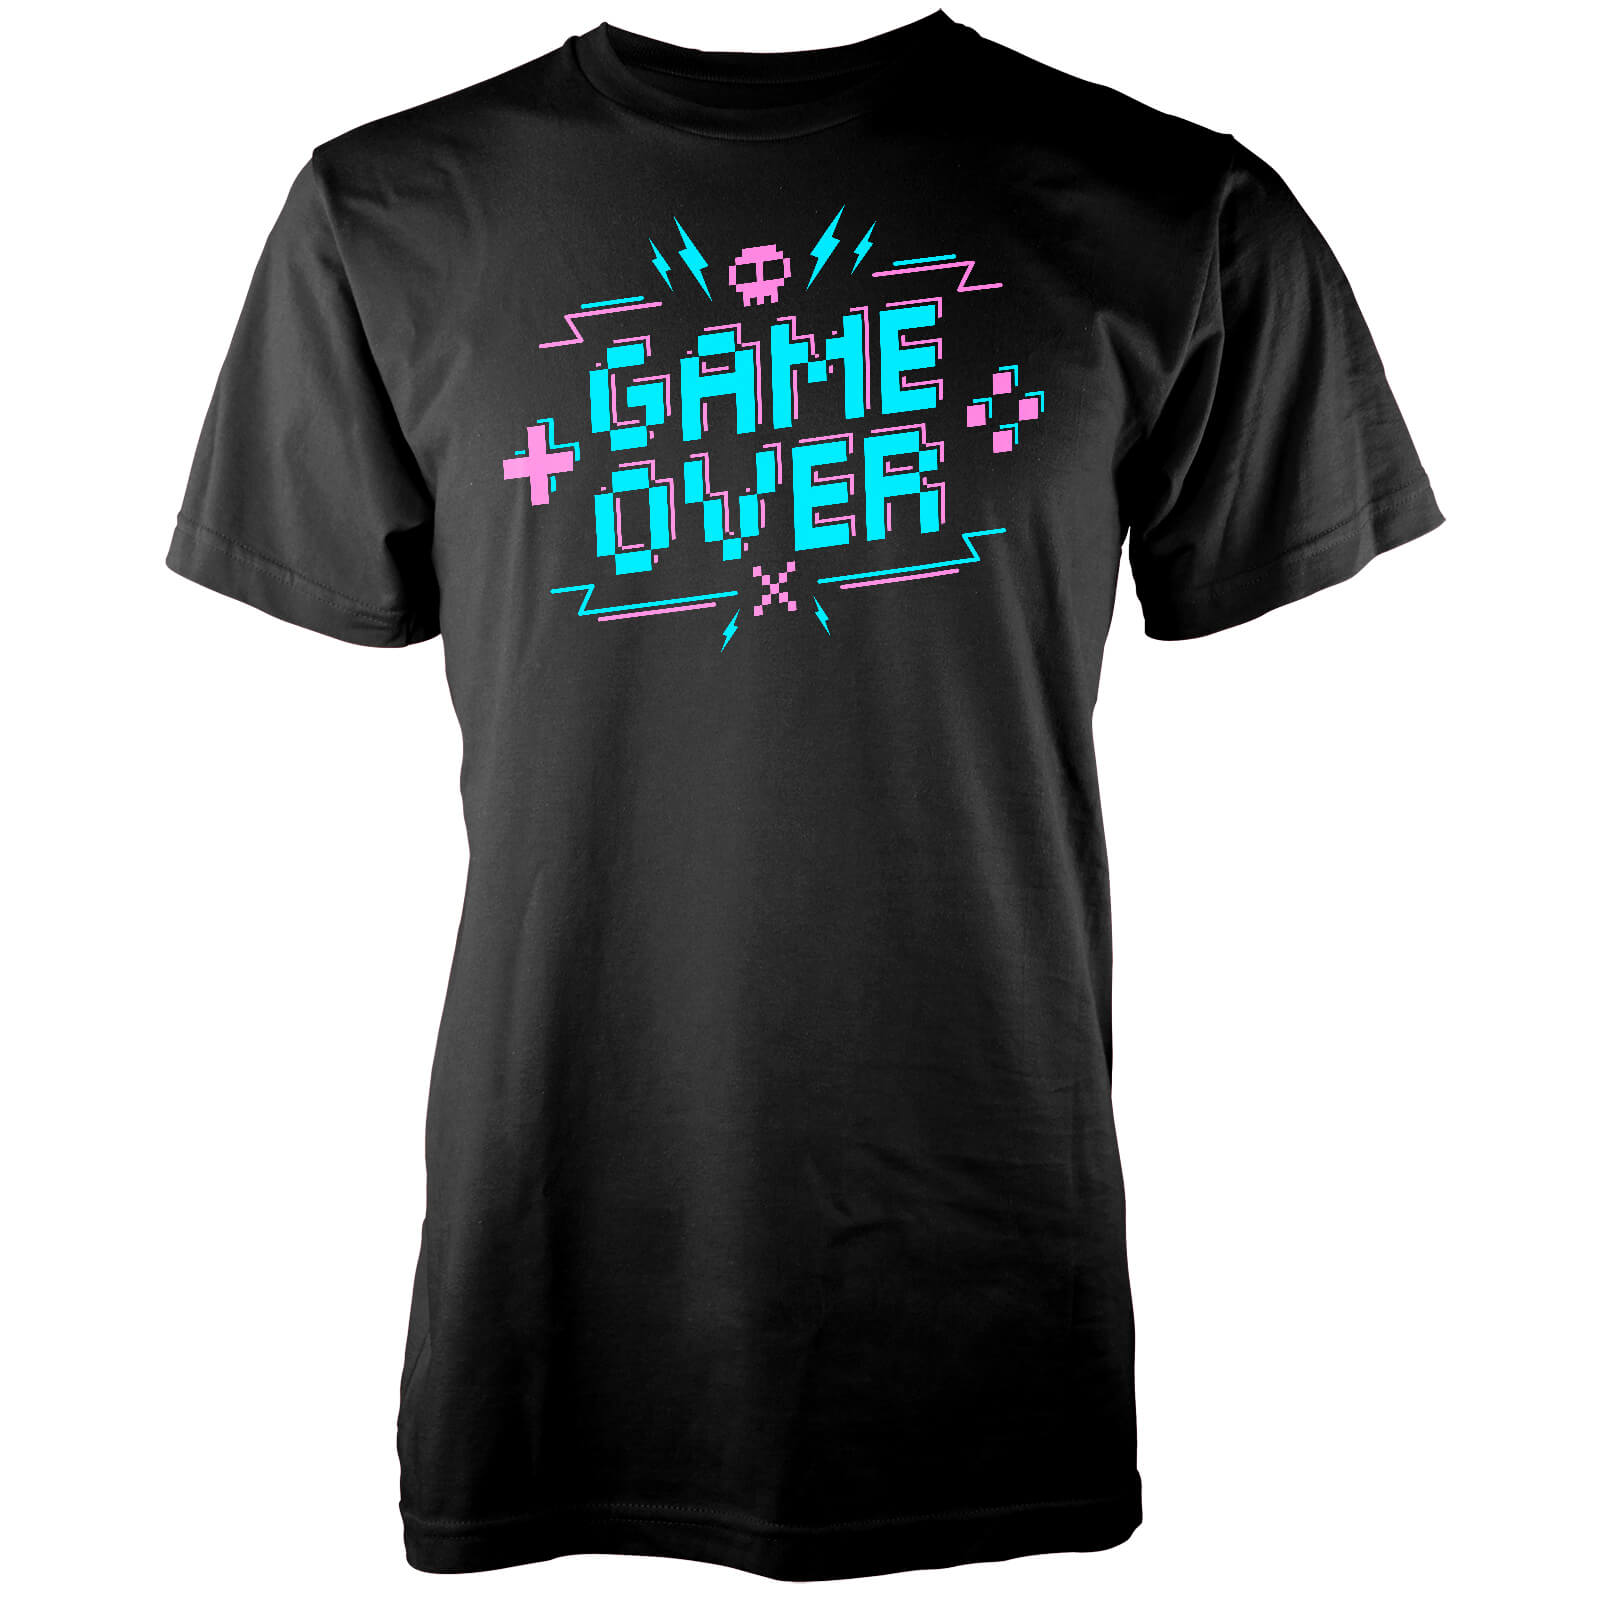 T-Shirt Homme Game Over Pixel Crédits - Noir